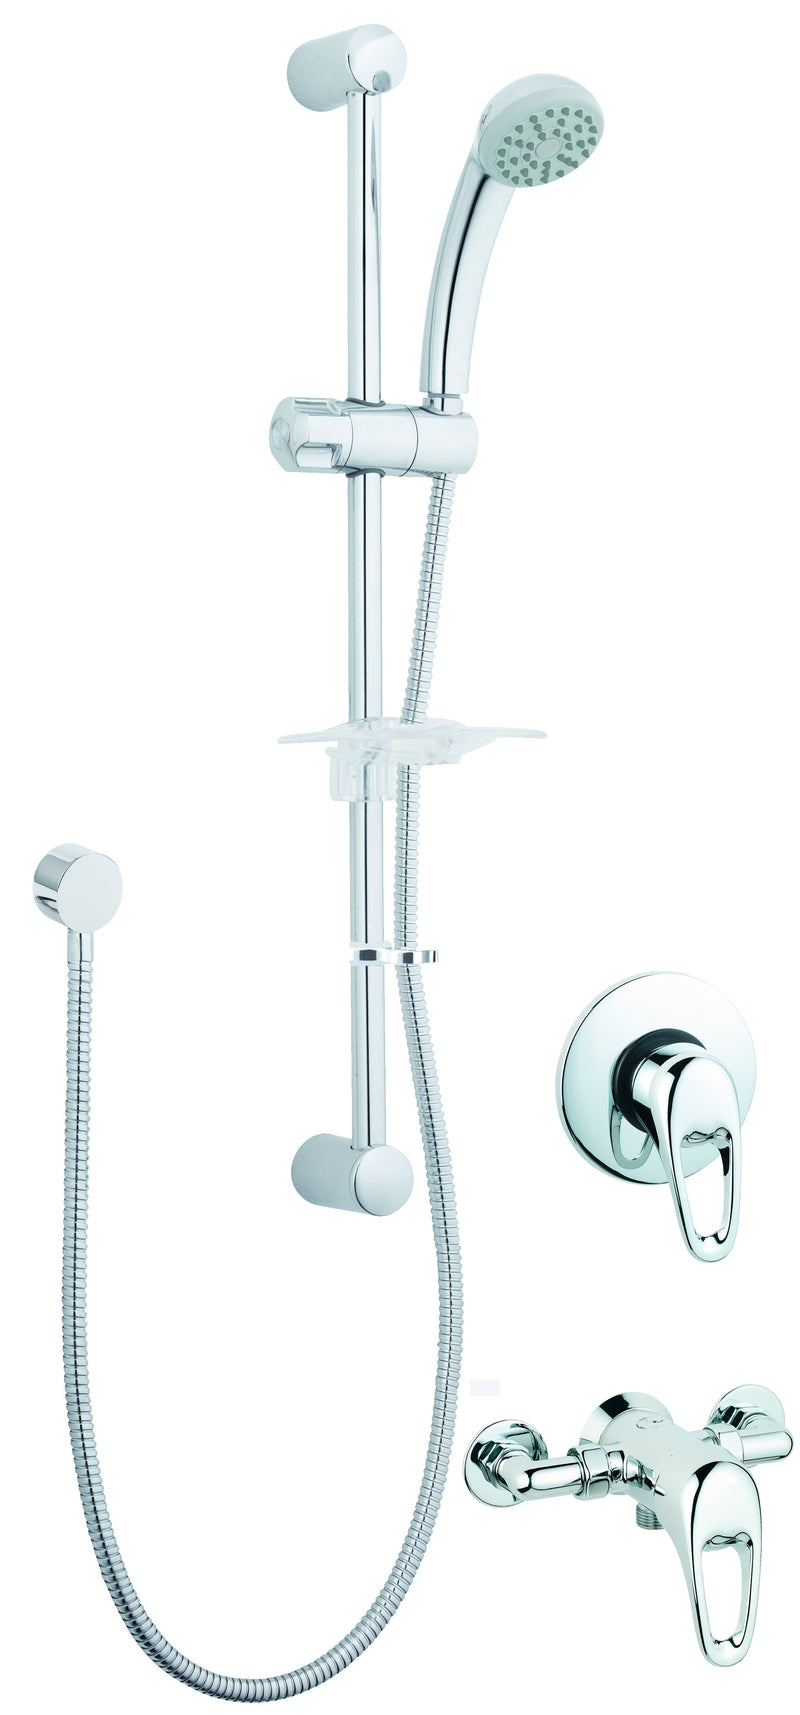 LACE MANUAL SHOWER VALVE WITH SINGLE MODE KIT